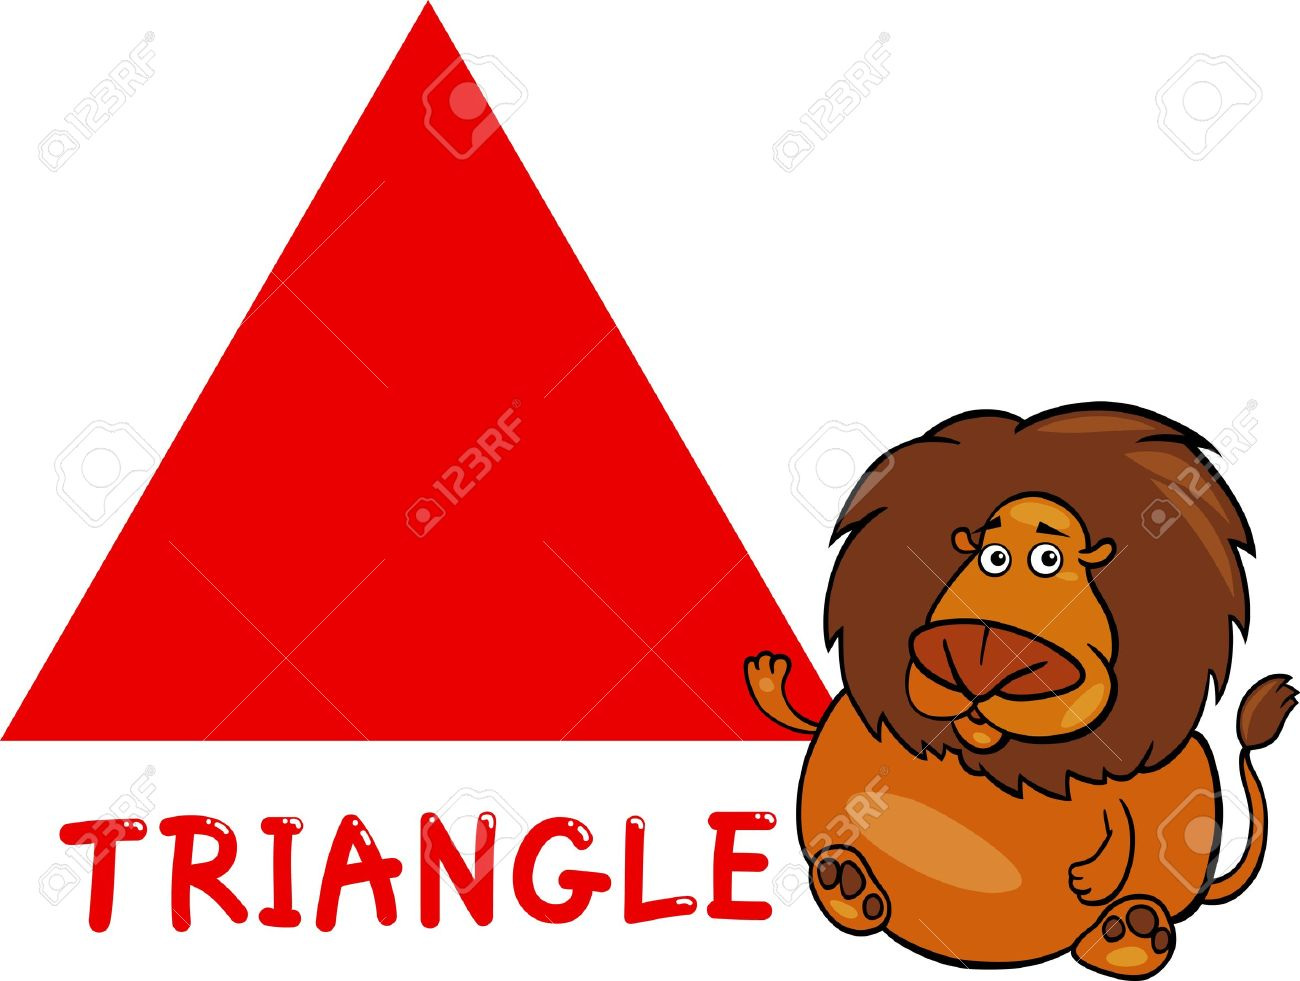 Cartoon Illustration Of Triangle Basic Geometric Shape With Funny ...